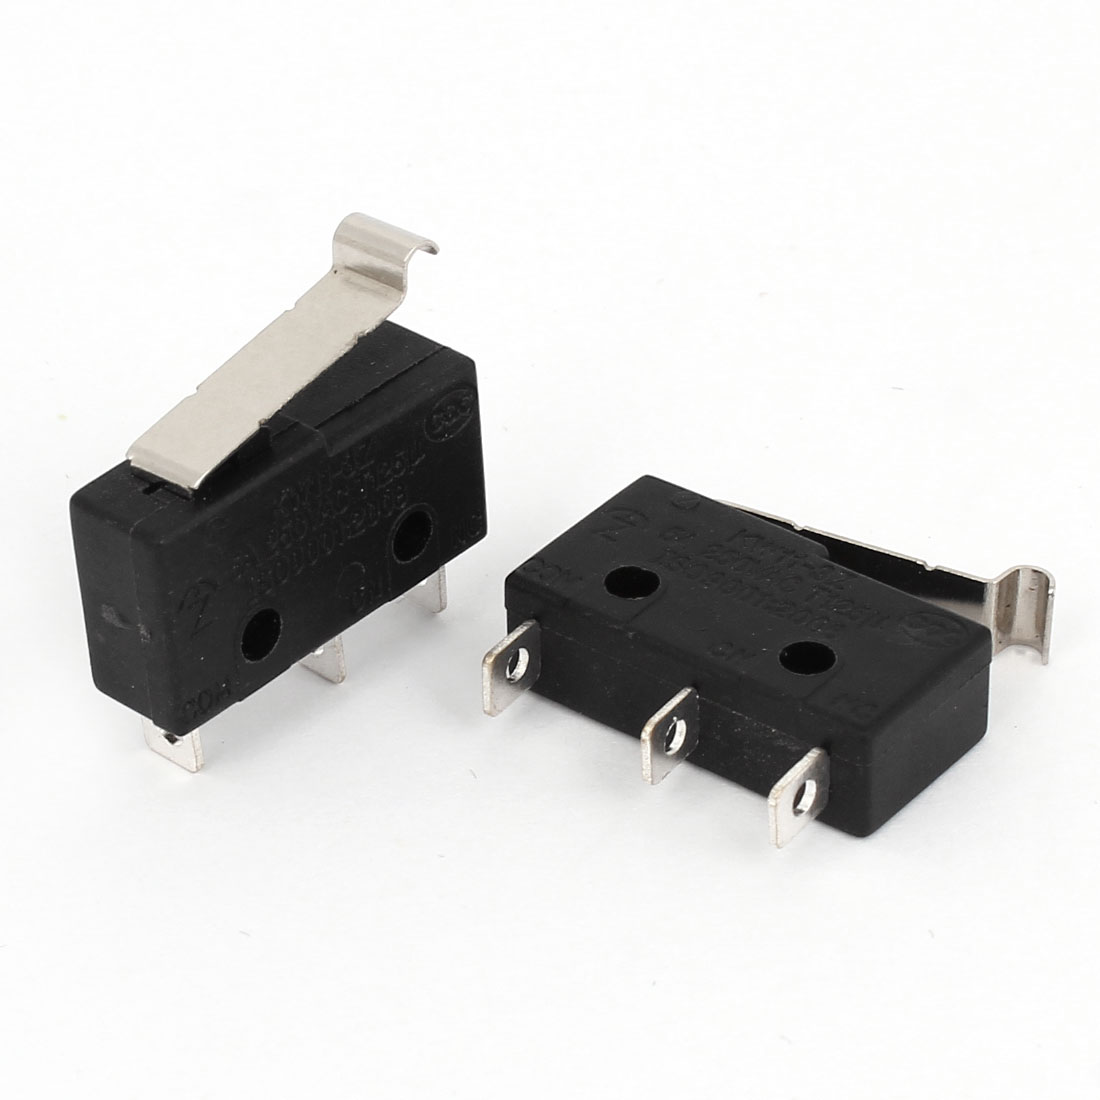 2Pcs Micro Limit Switch AC250V 5A 3 Pins Miniature SPDT Momentary Short Hinge Lever Snap Action LOT